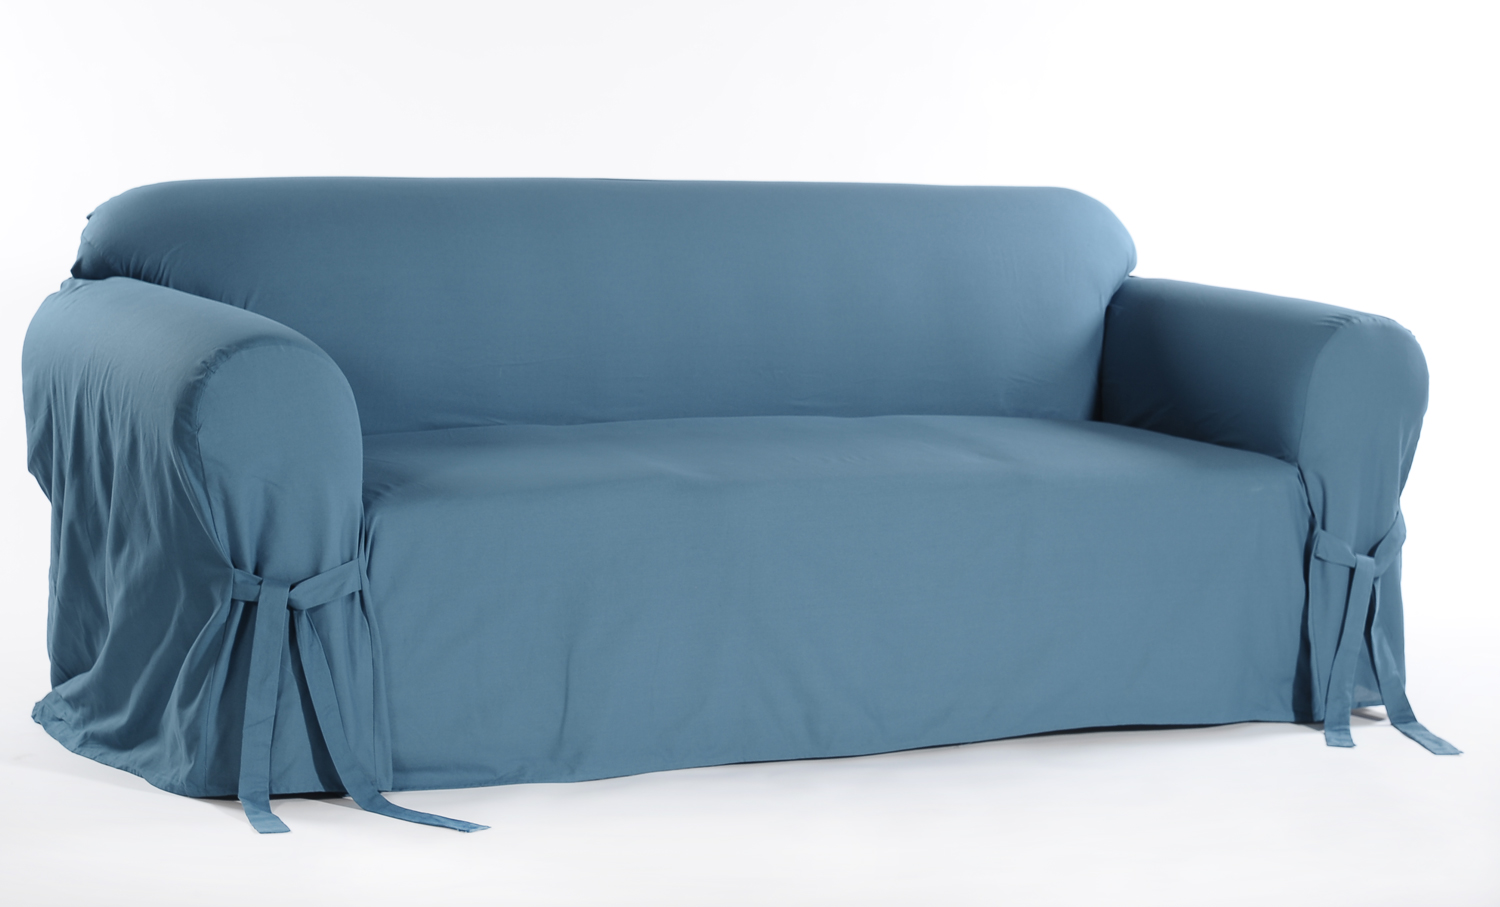 quilted embroidery sectional sofa couch slipcovers furniture protector cotton murphy bed nyc covers kmart classic duck one piece loveseat slipcover